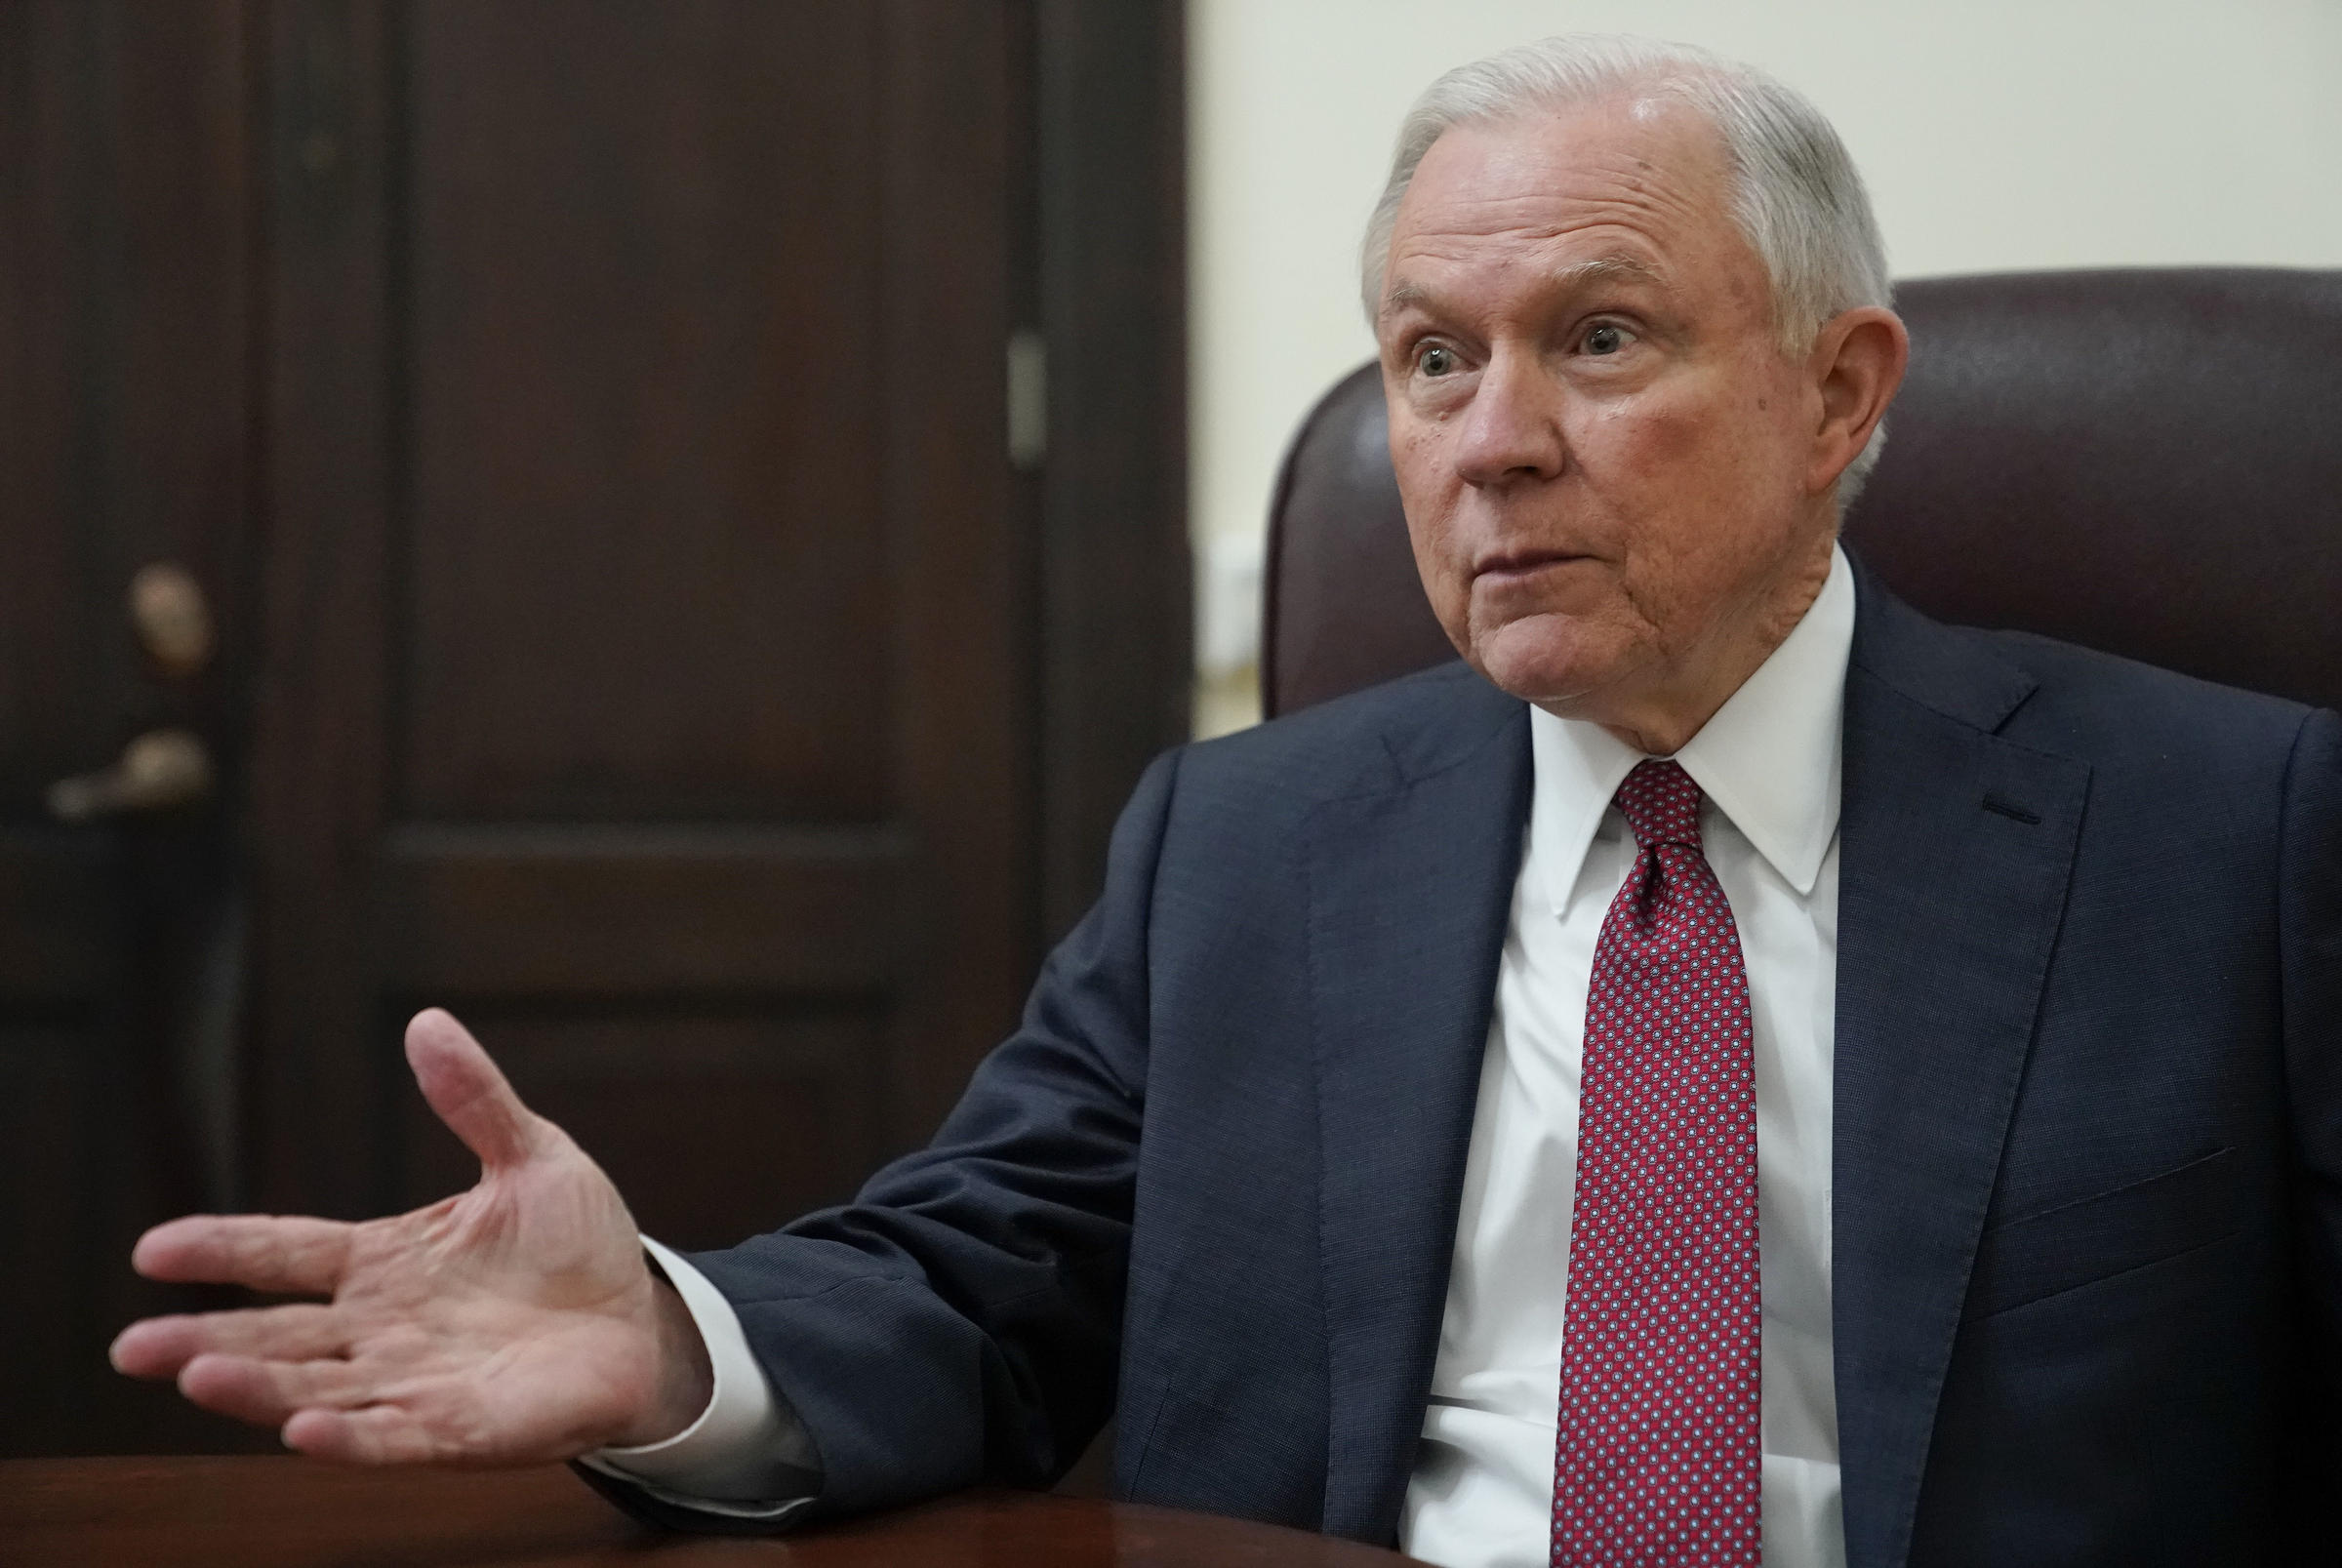 DOJ Says Sanctuary Cities Can't Participate In New Anti-Crime Program